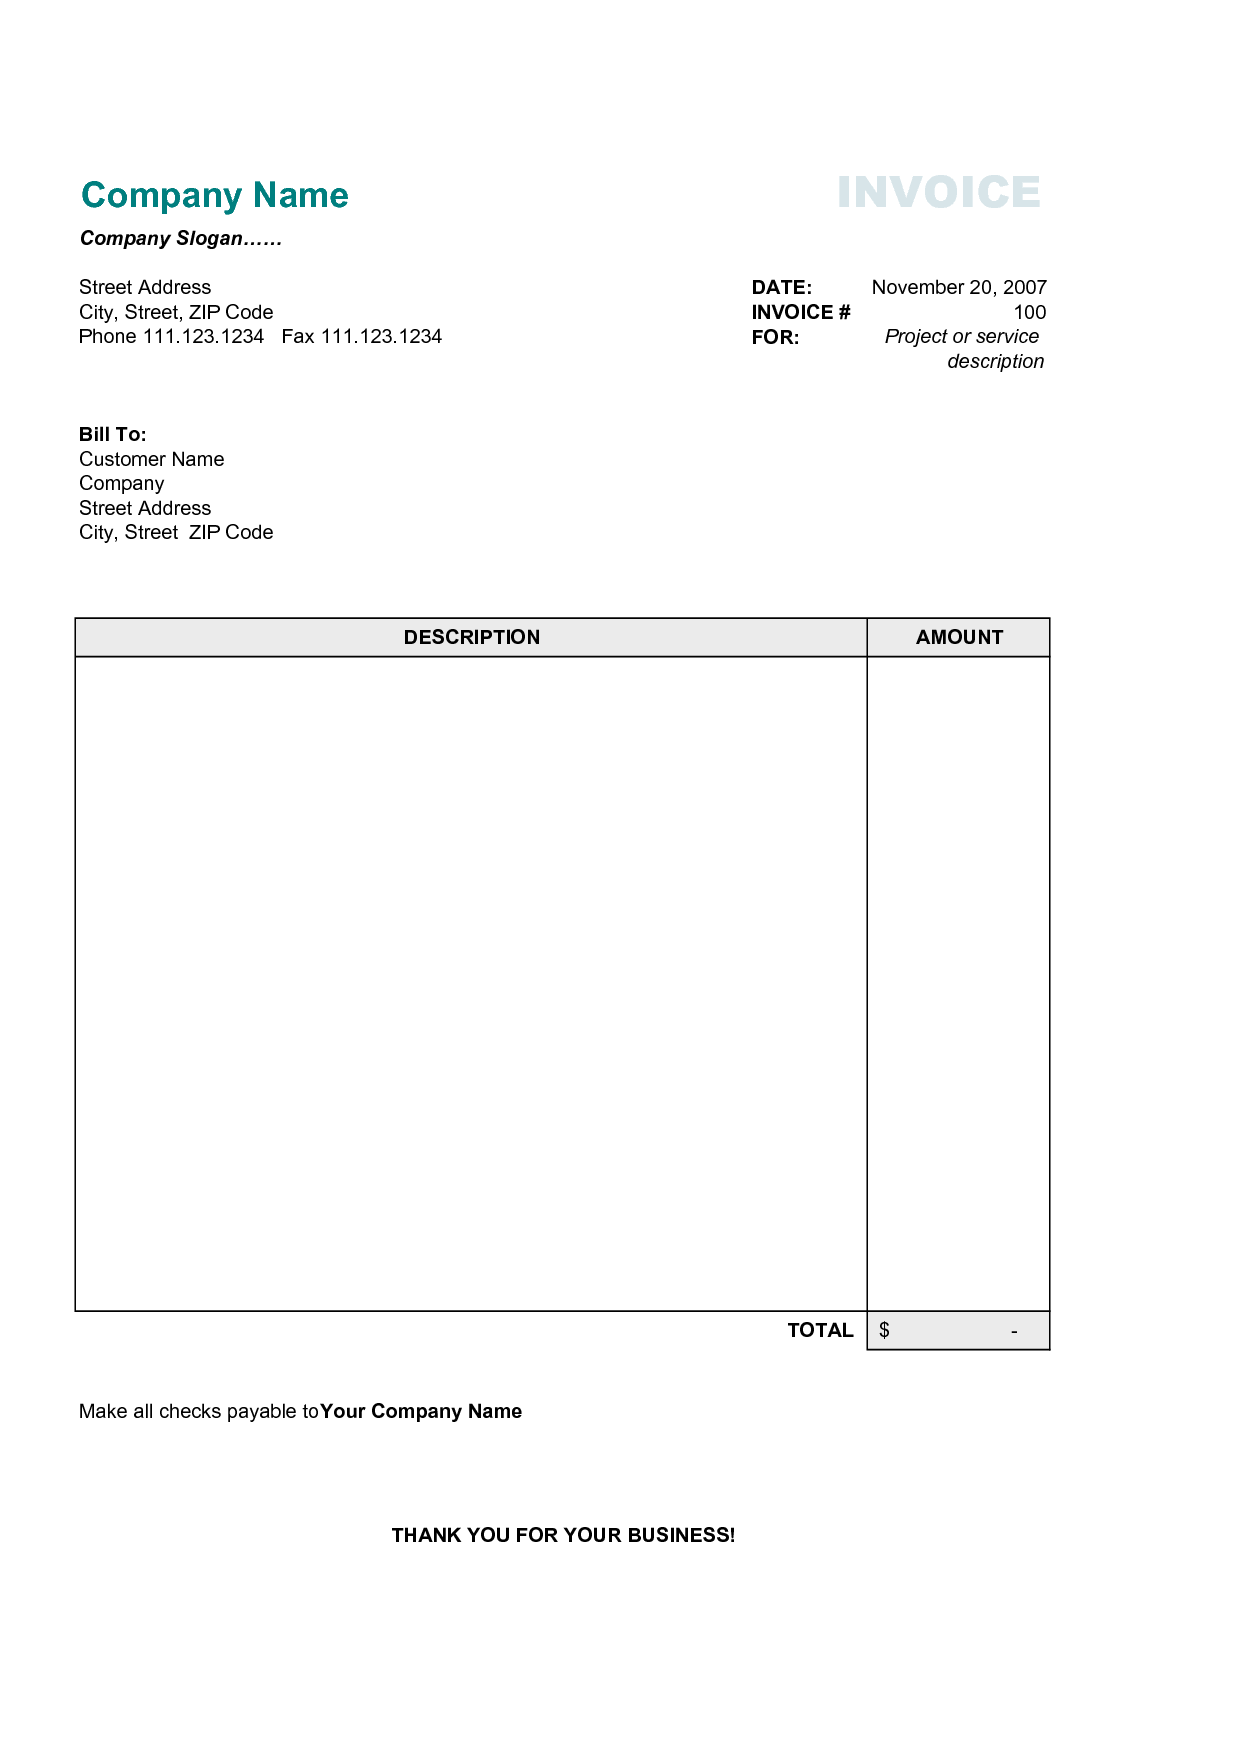 Image Of Invoice Template and Basic Invoice Template Free Invoice Example